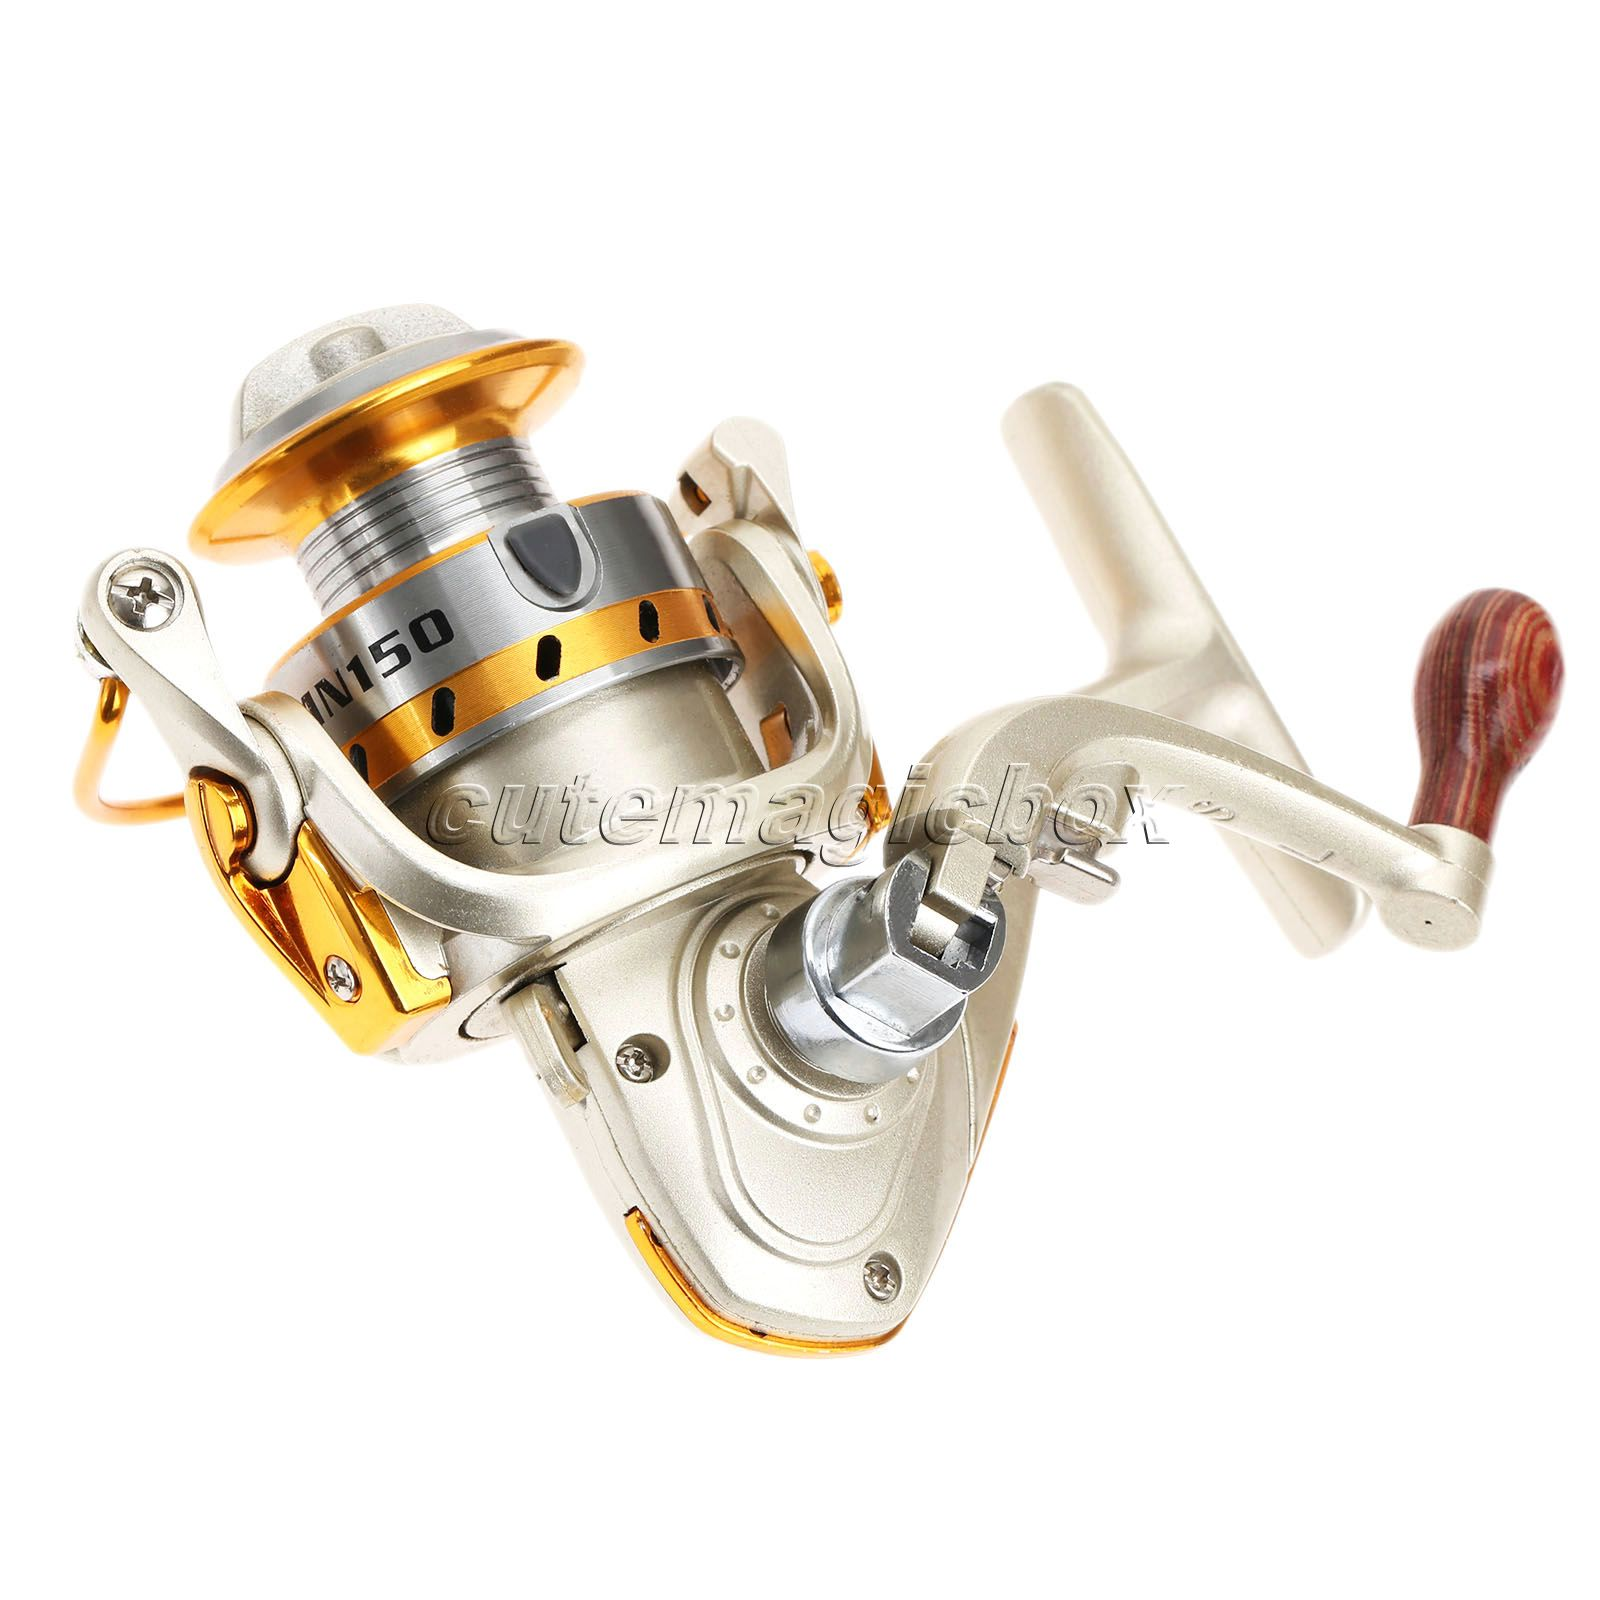 fishing reels cheap promotion-shop for promotional fishing reels, Fishing Reels